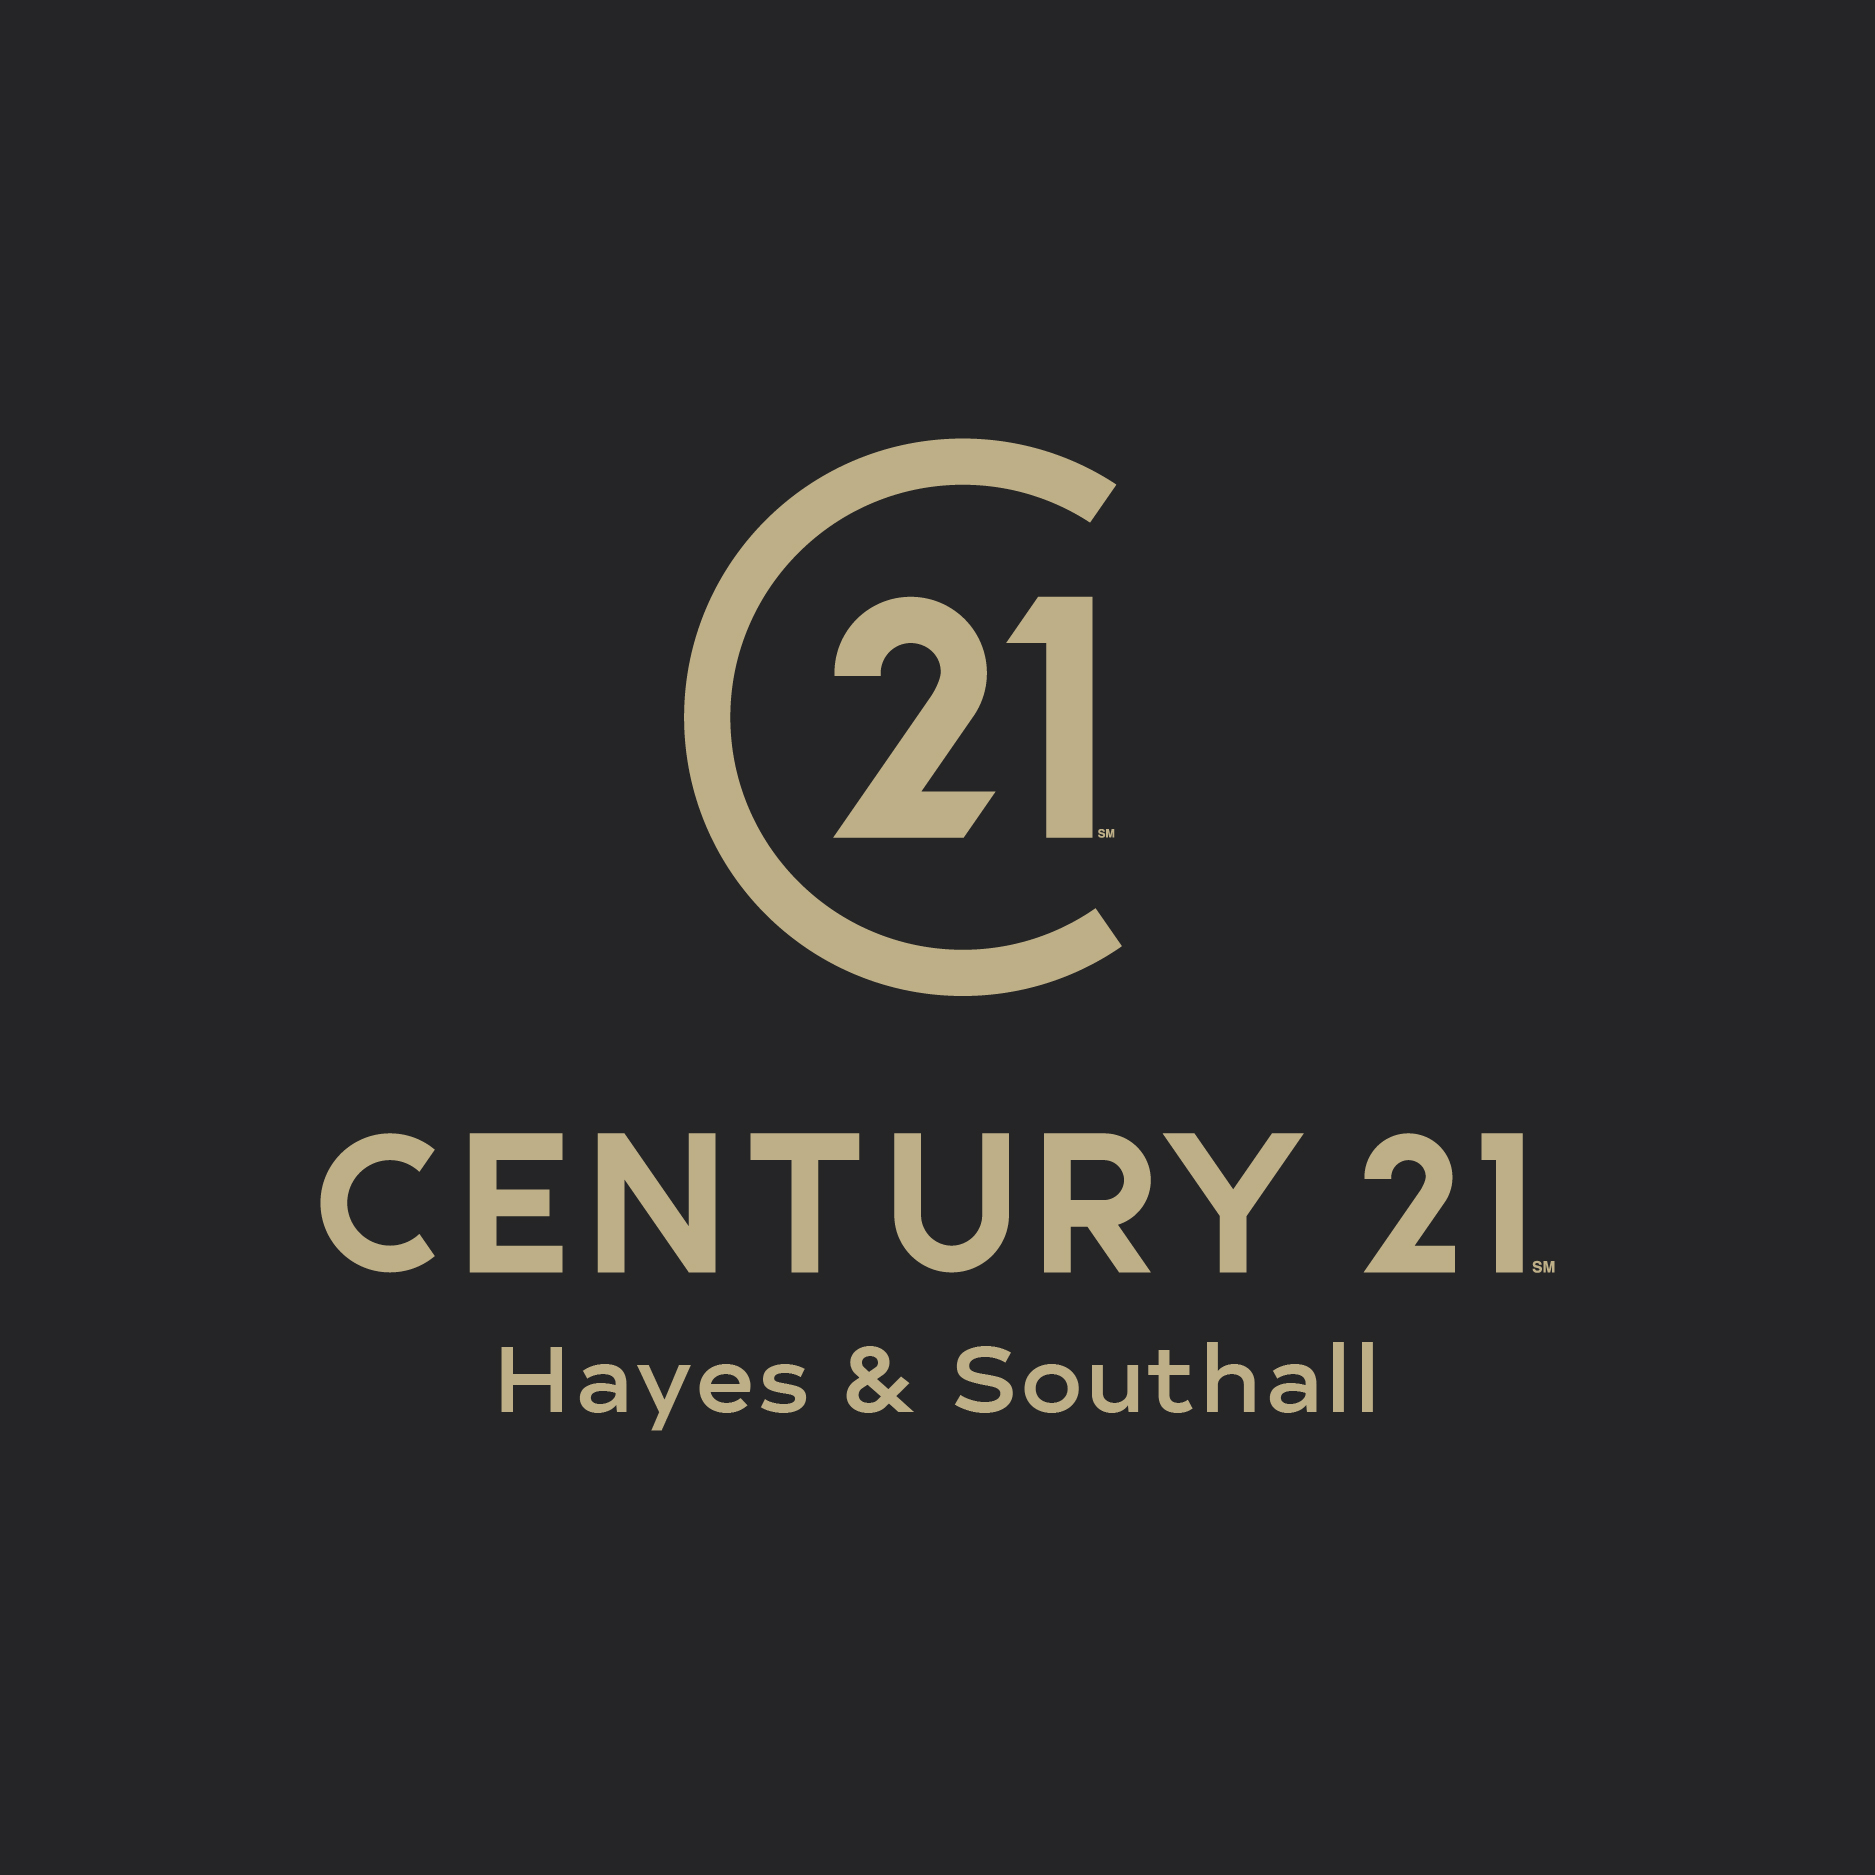 Century 21 - Hayes & Southall